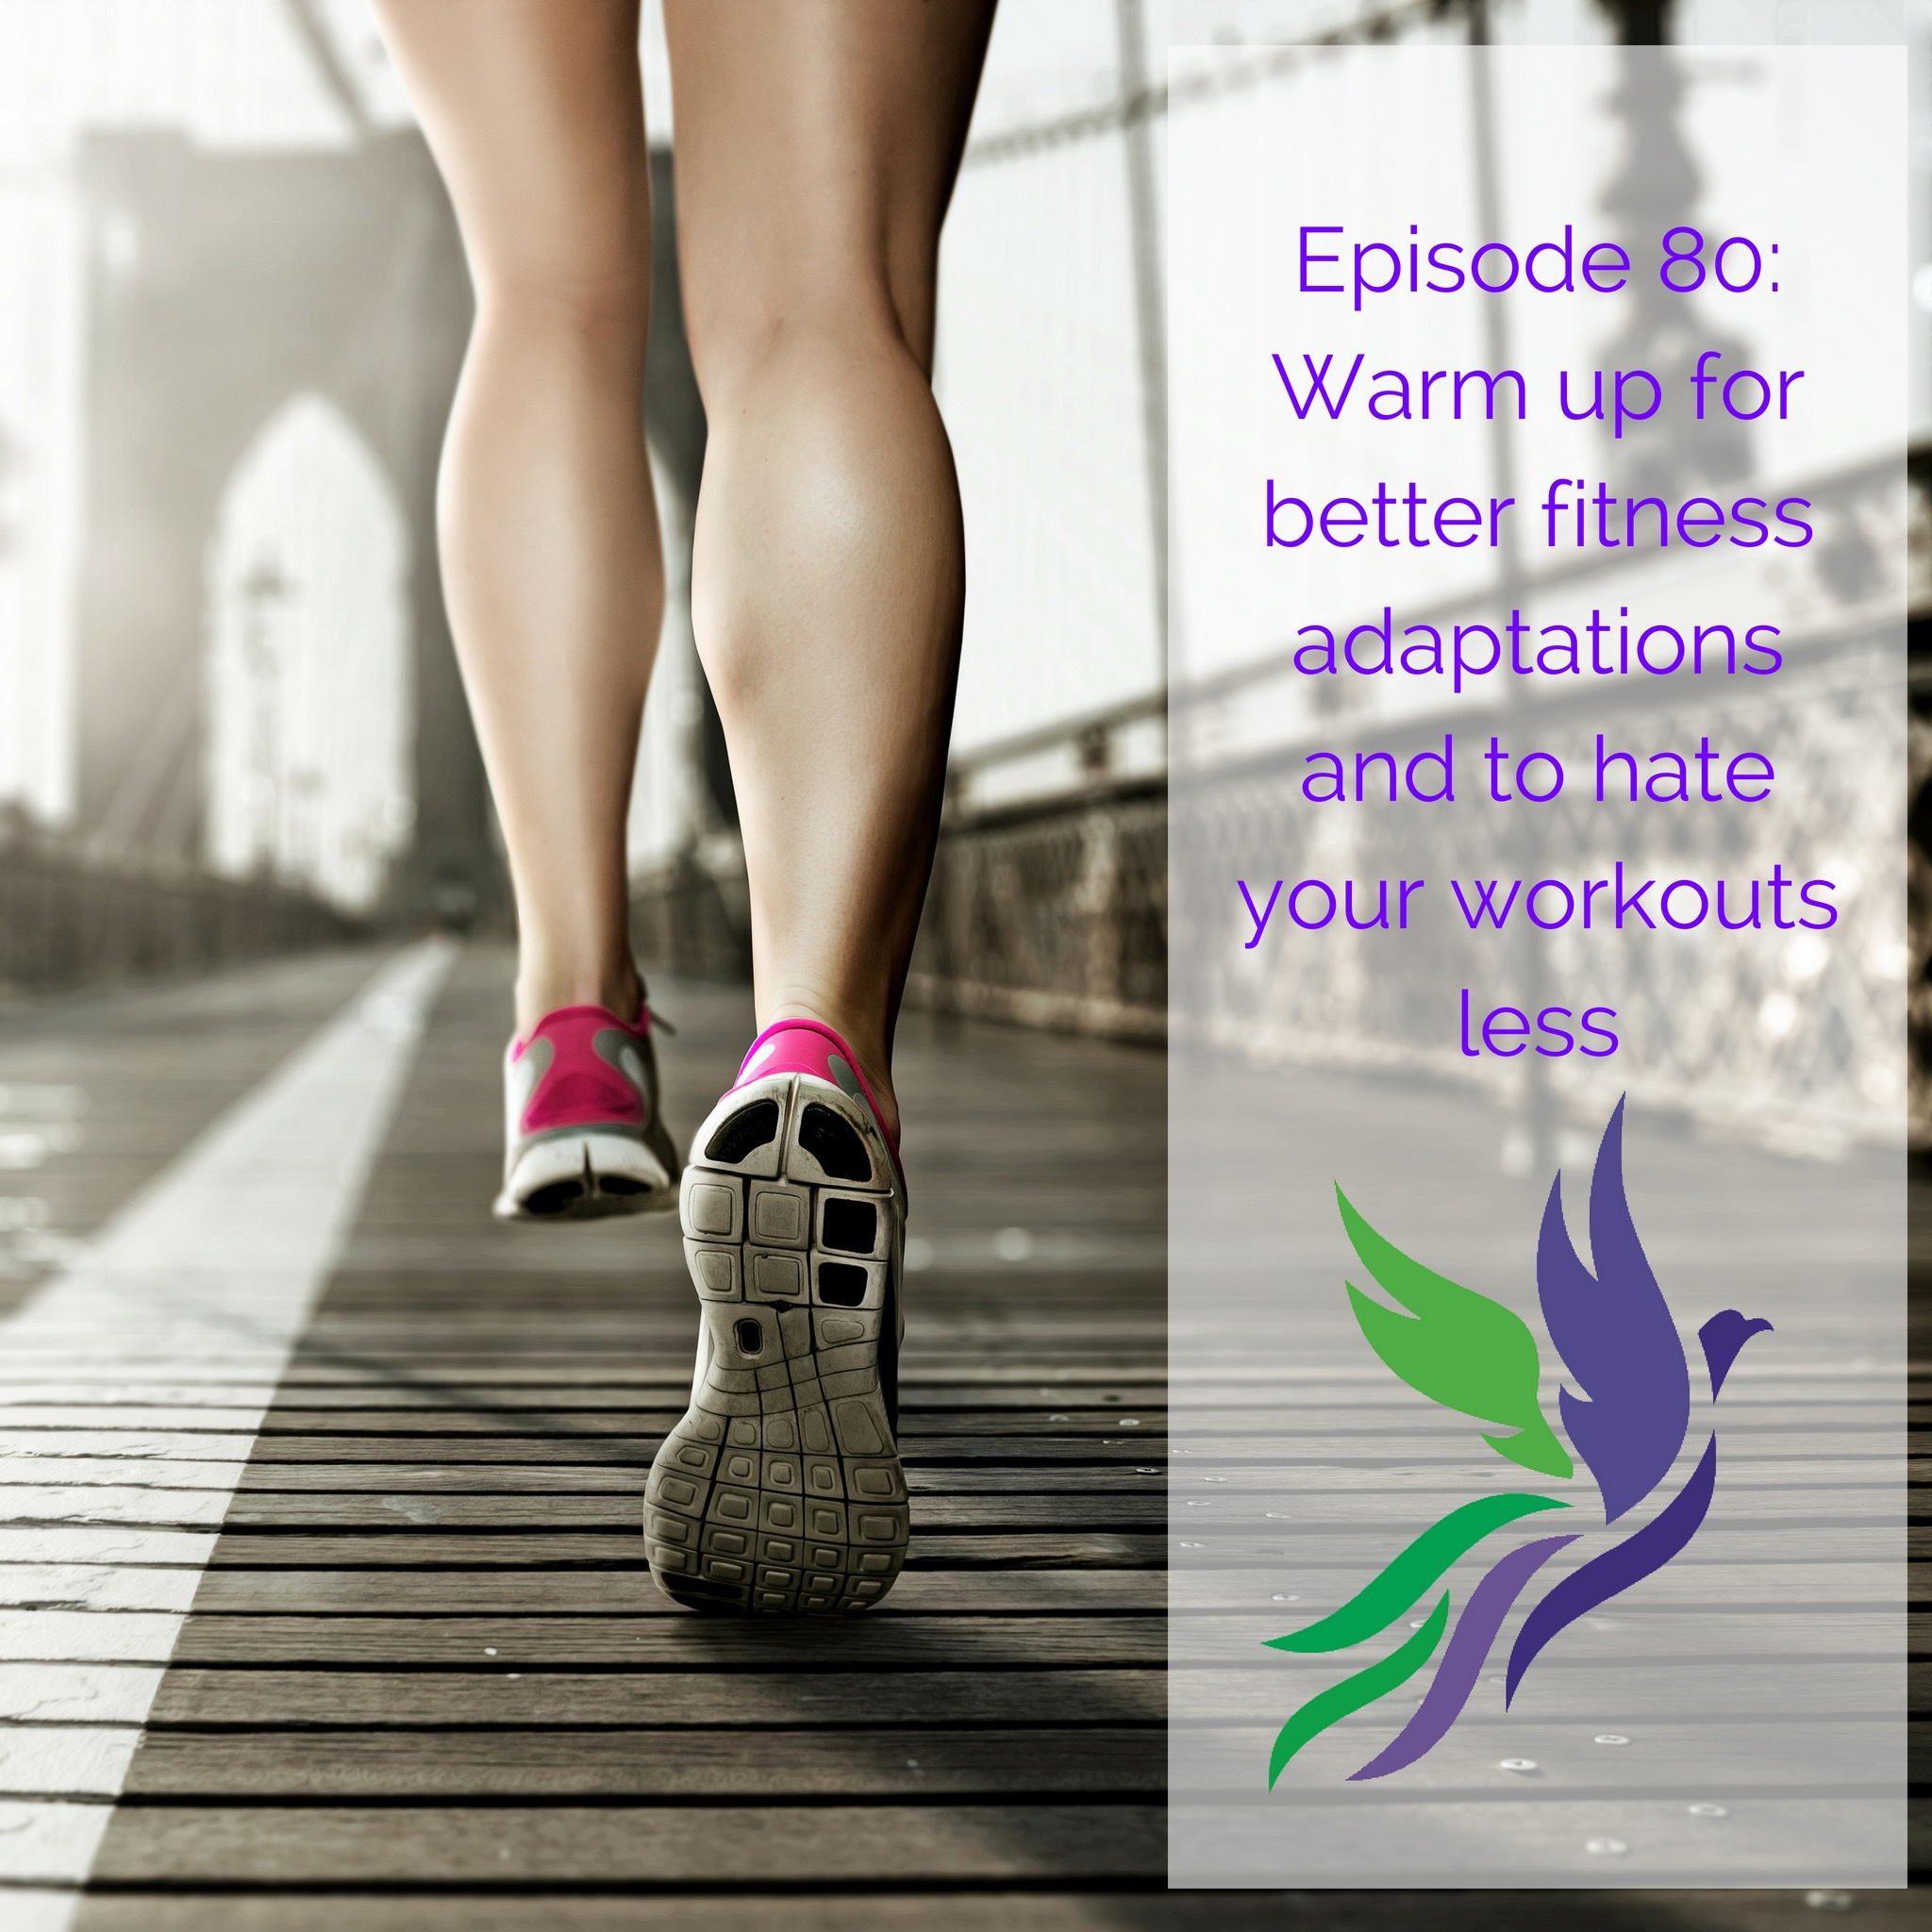 #80 Warm up for better fitness adaptations and to hate your workouts less